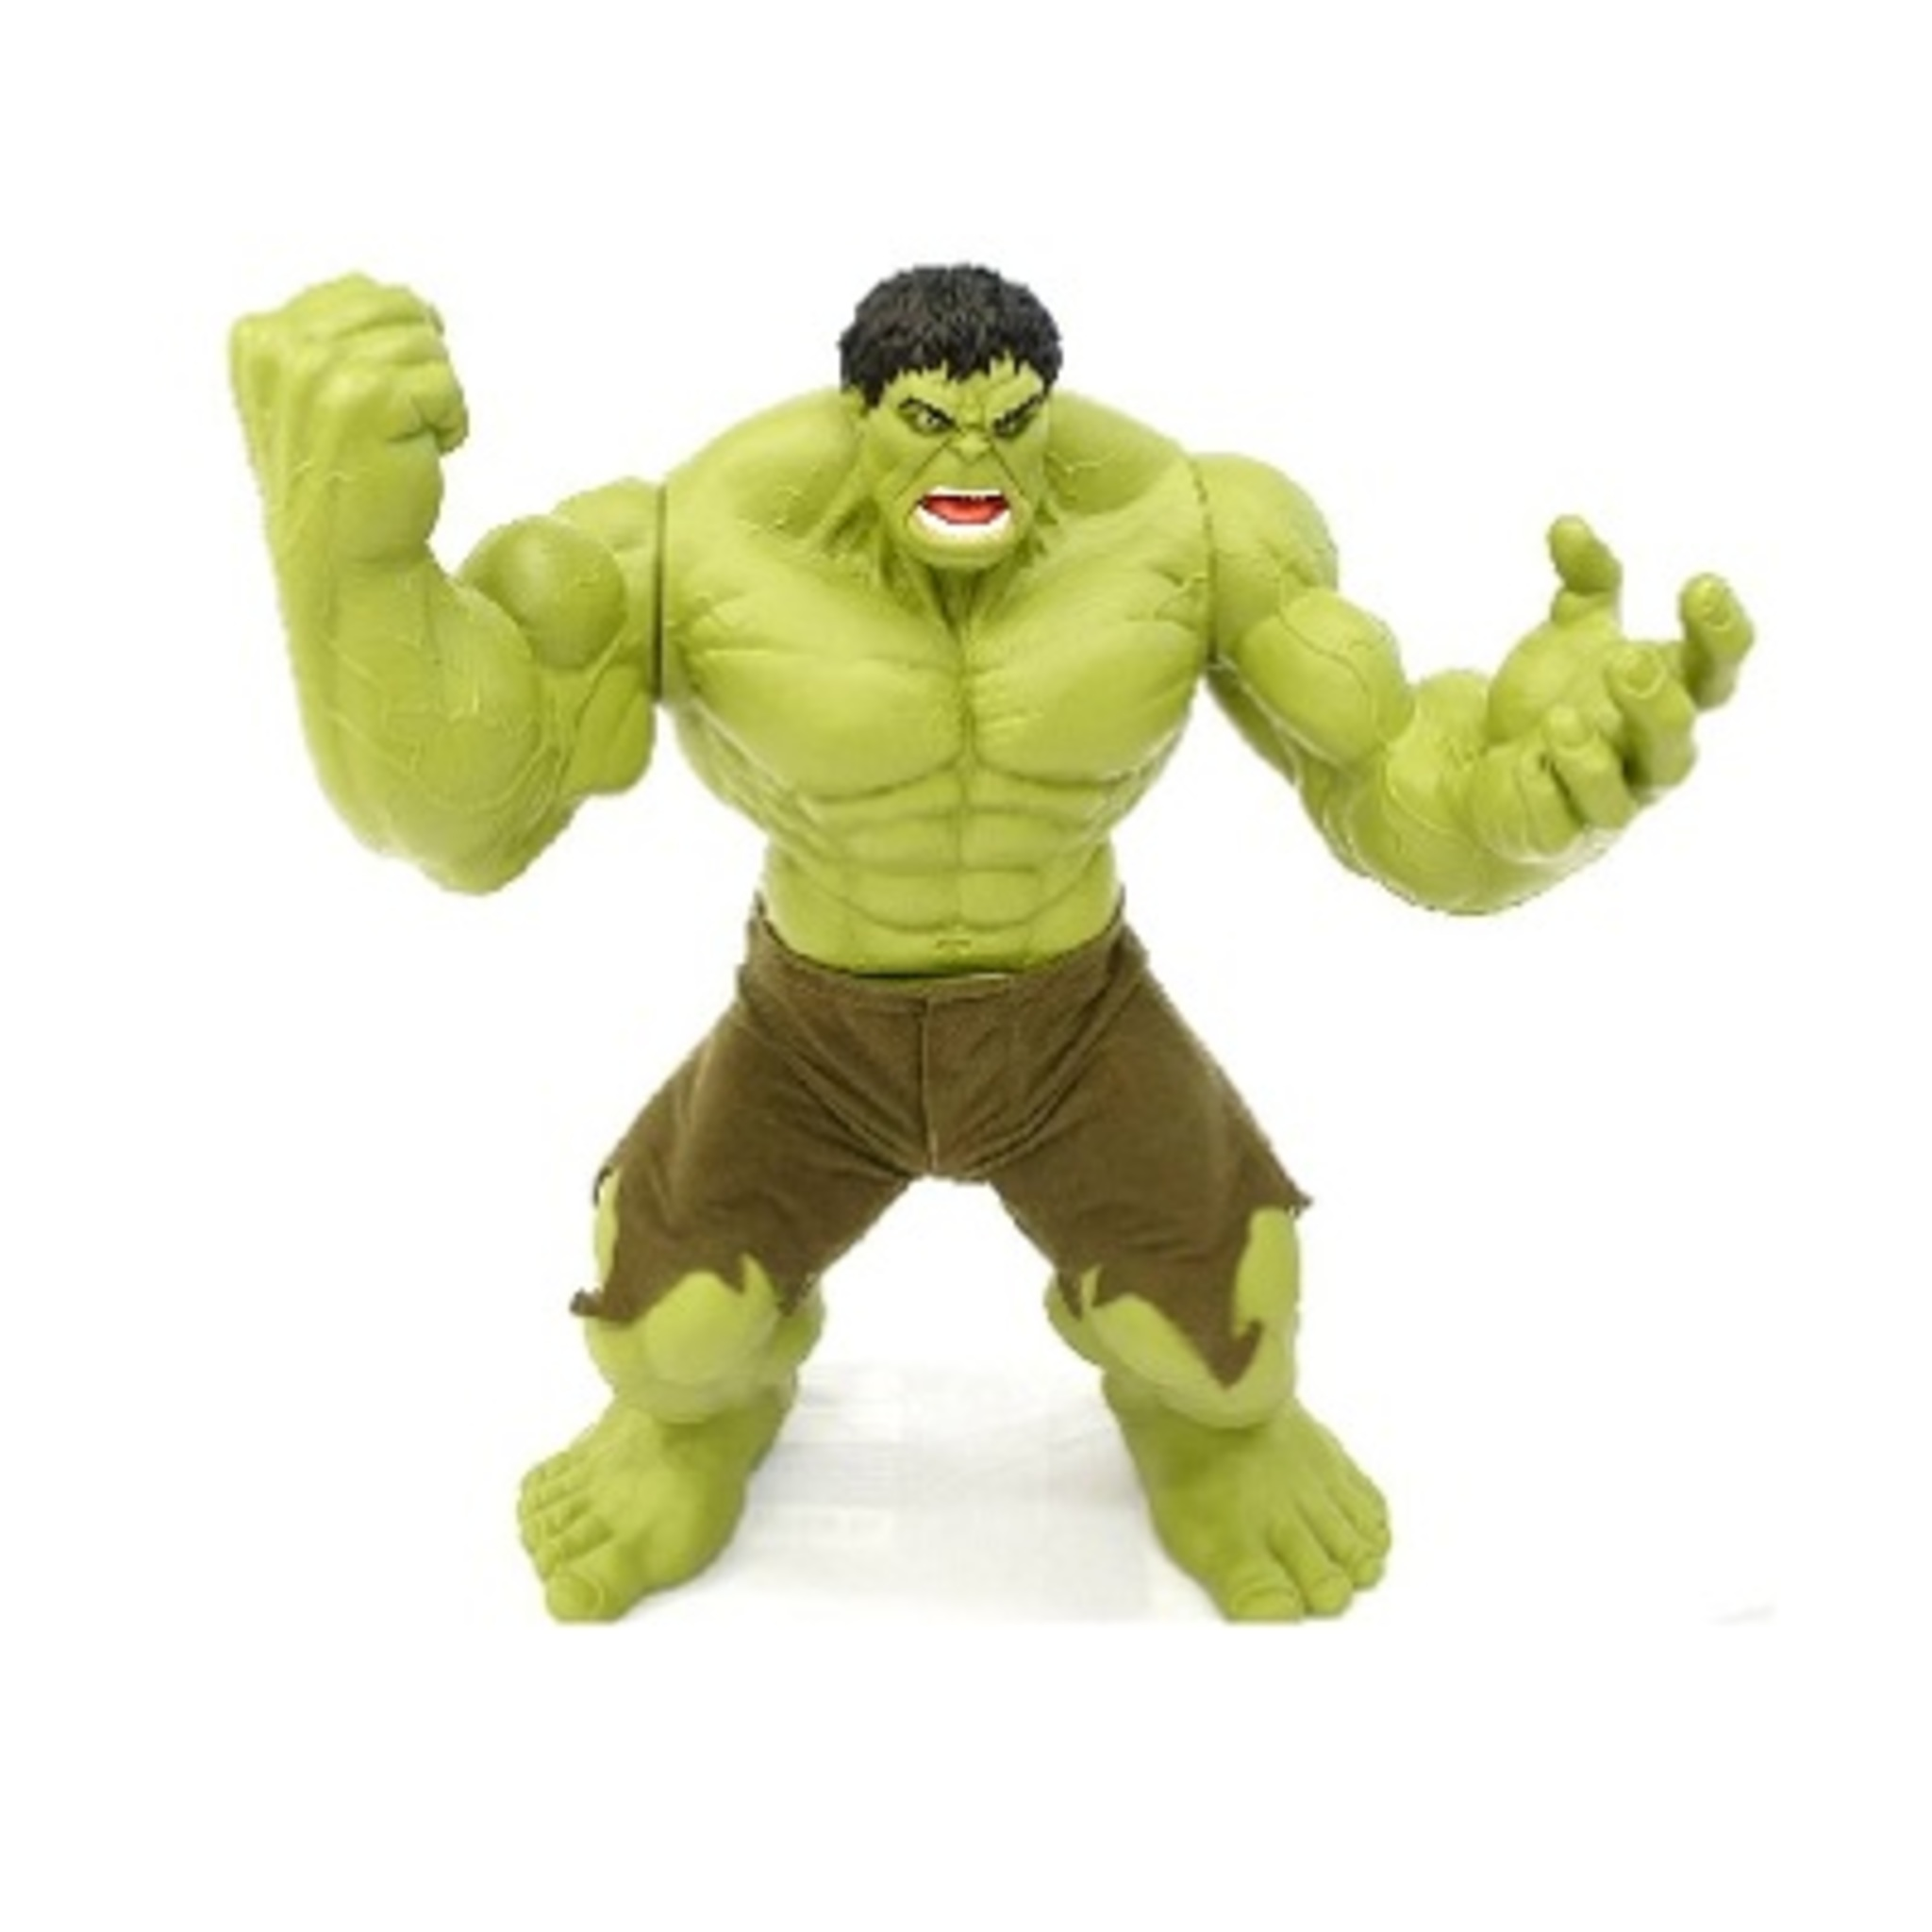 Incrivel Hulck Beautiful boneco incrível hulk premium mimo 55cm - macro virtual